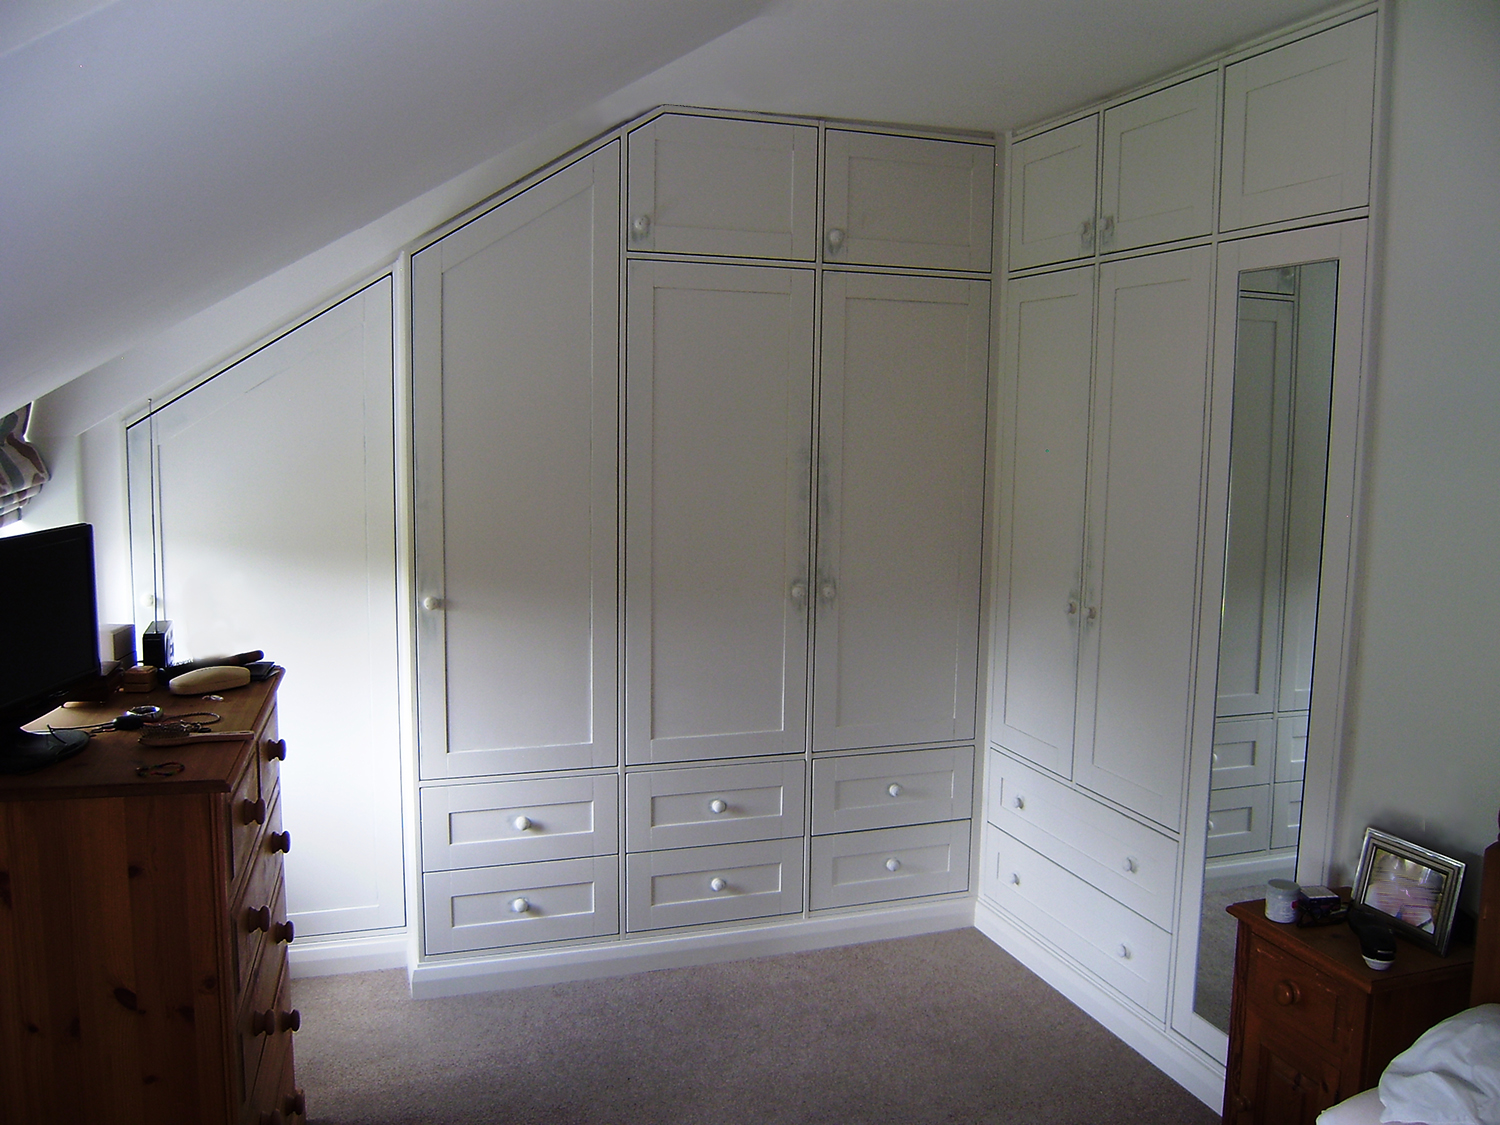 - These fitted wardrobes have been painted in an off white colour with a darker undercoat beneath. The top layer has been gently sanded through to give a slightly worn appearance around the handles.